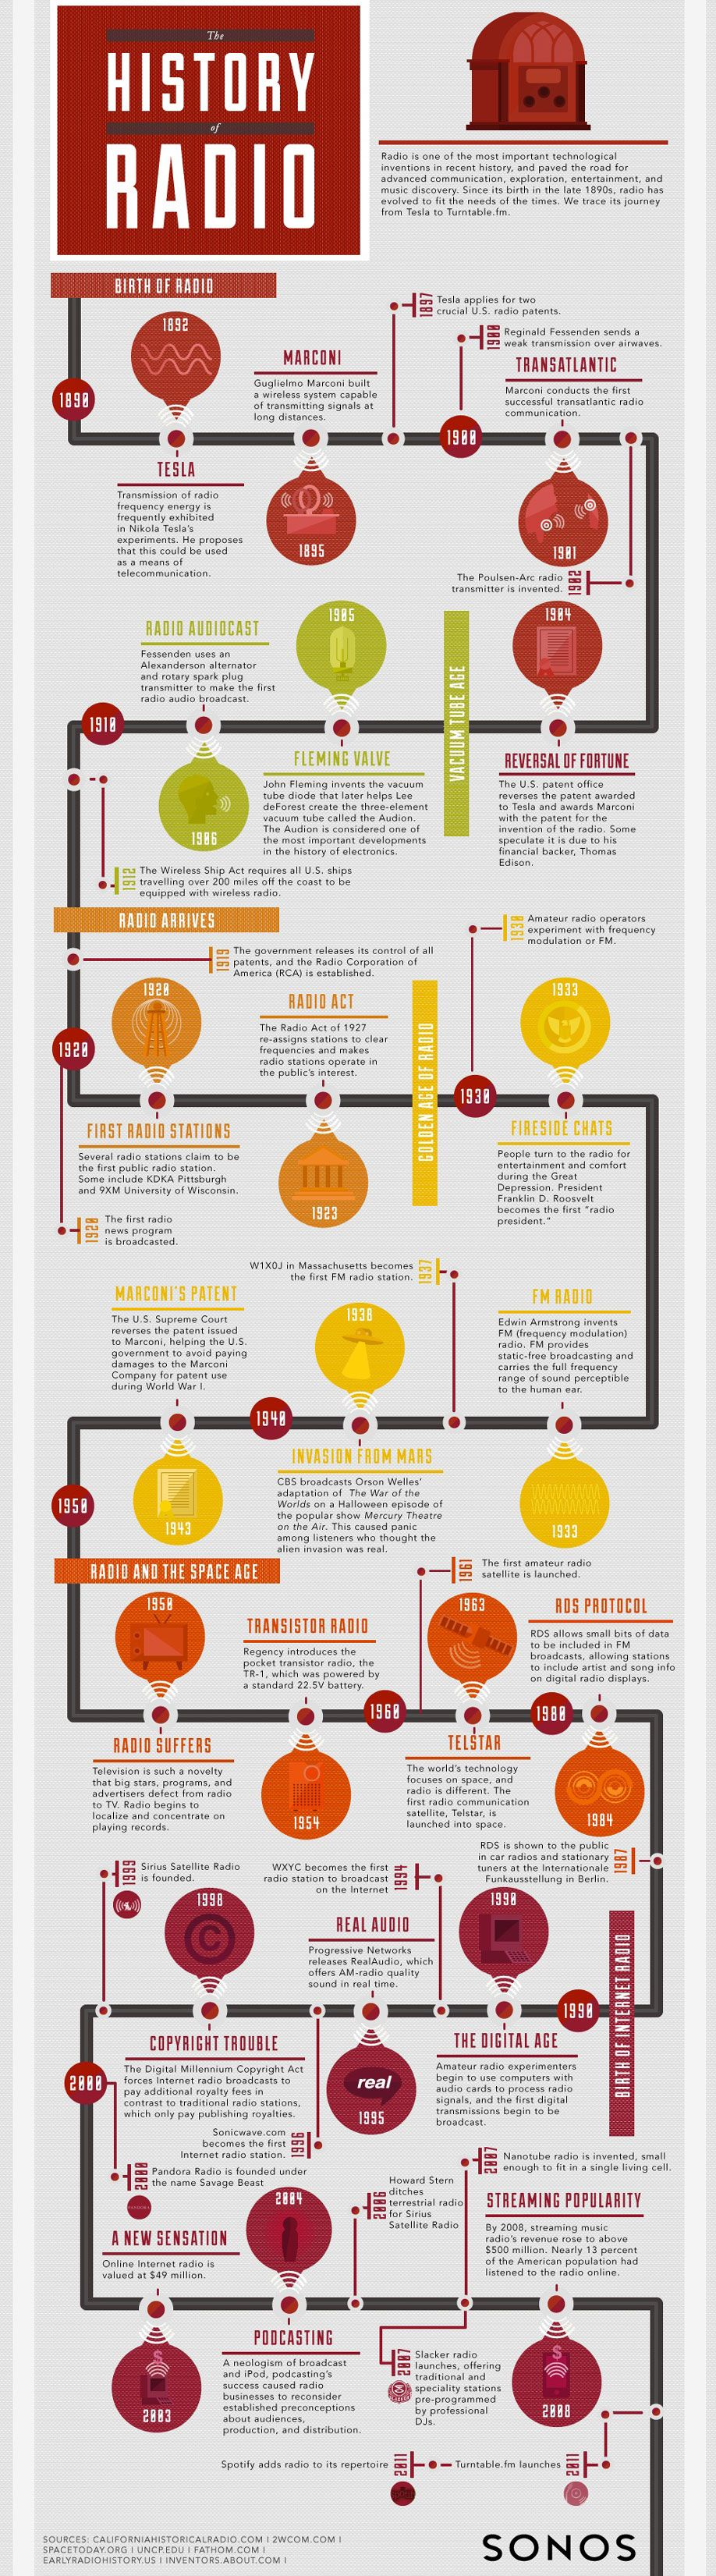 Radio Is One Of The Most Important Technological Inventions In Recent History And Paved The Road For Advanced Communication Explora Infographic Radio History